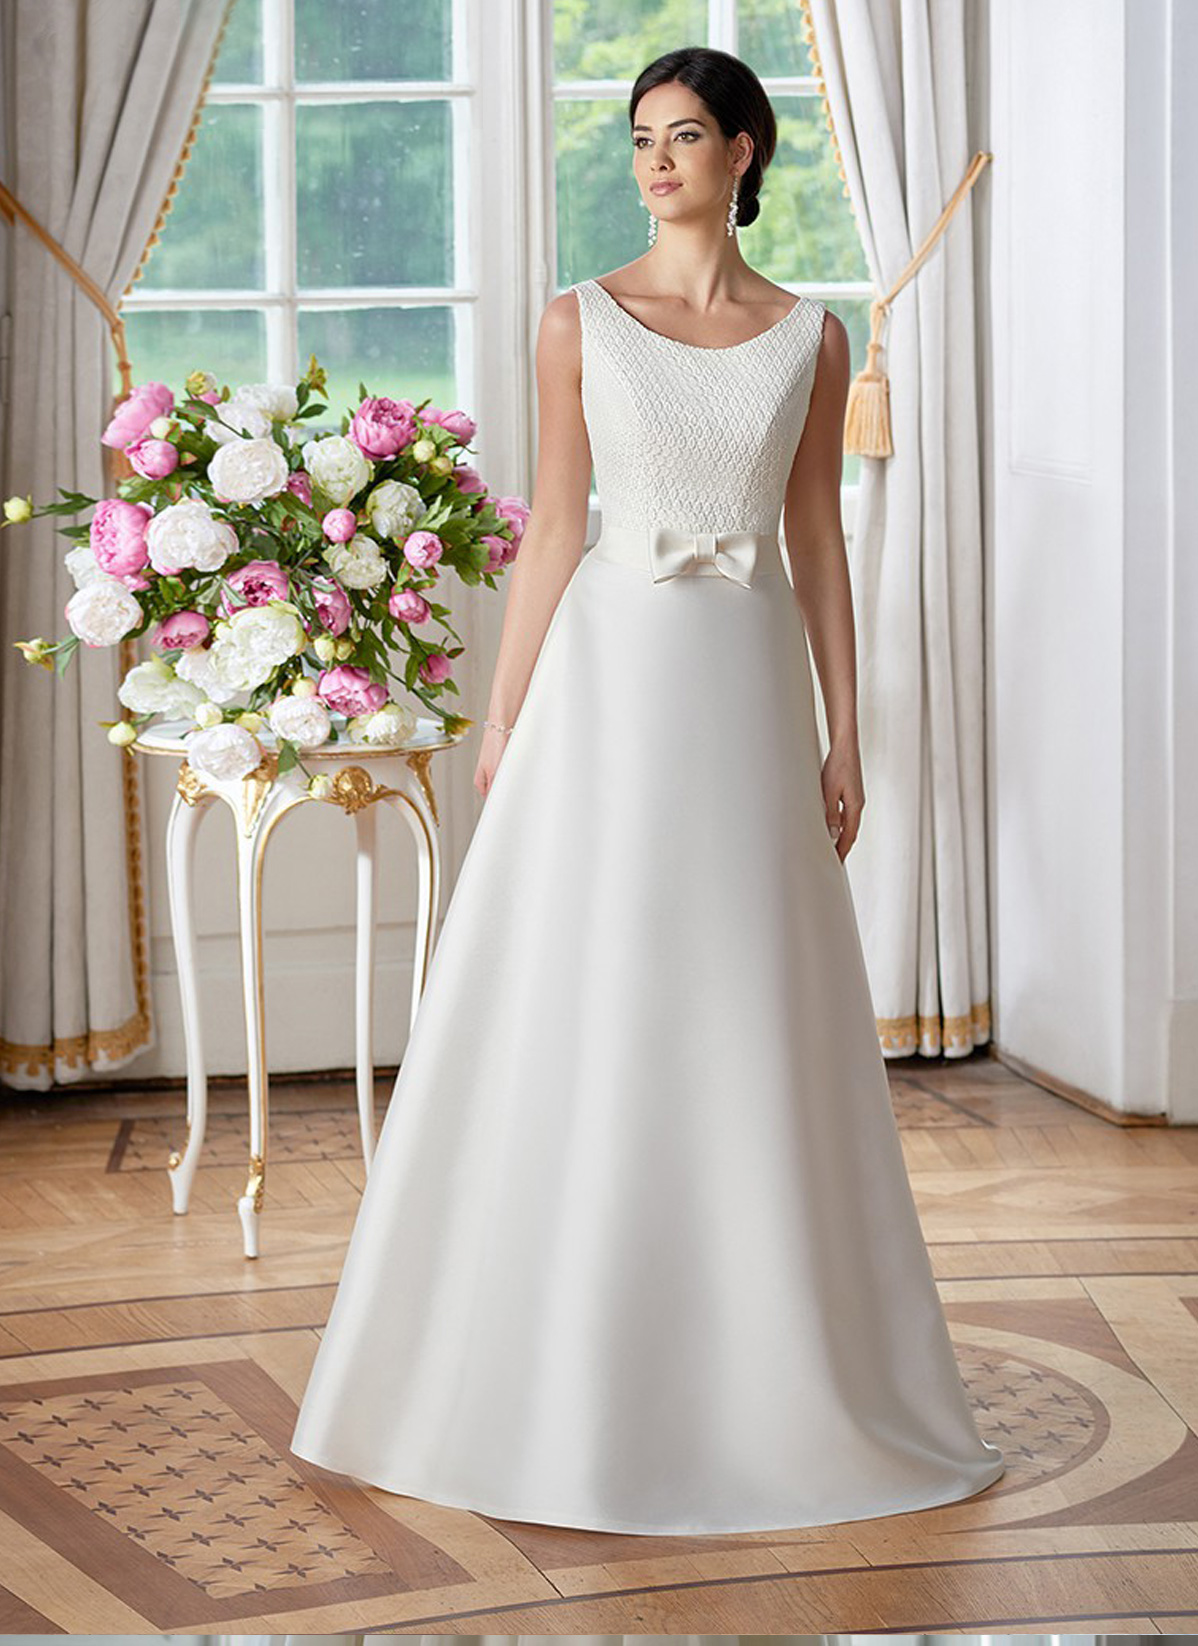 Herm's Bridal<br>Anita<br>Size 12 Was £1,100 Now £650